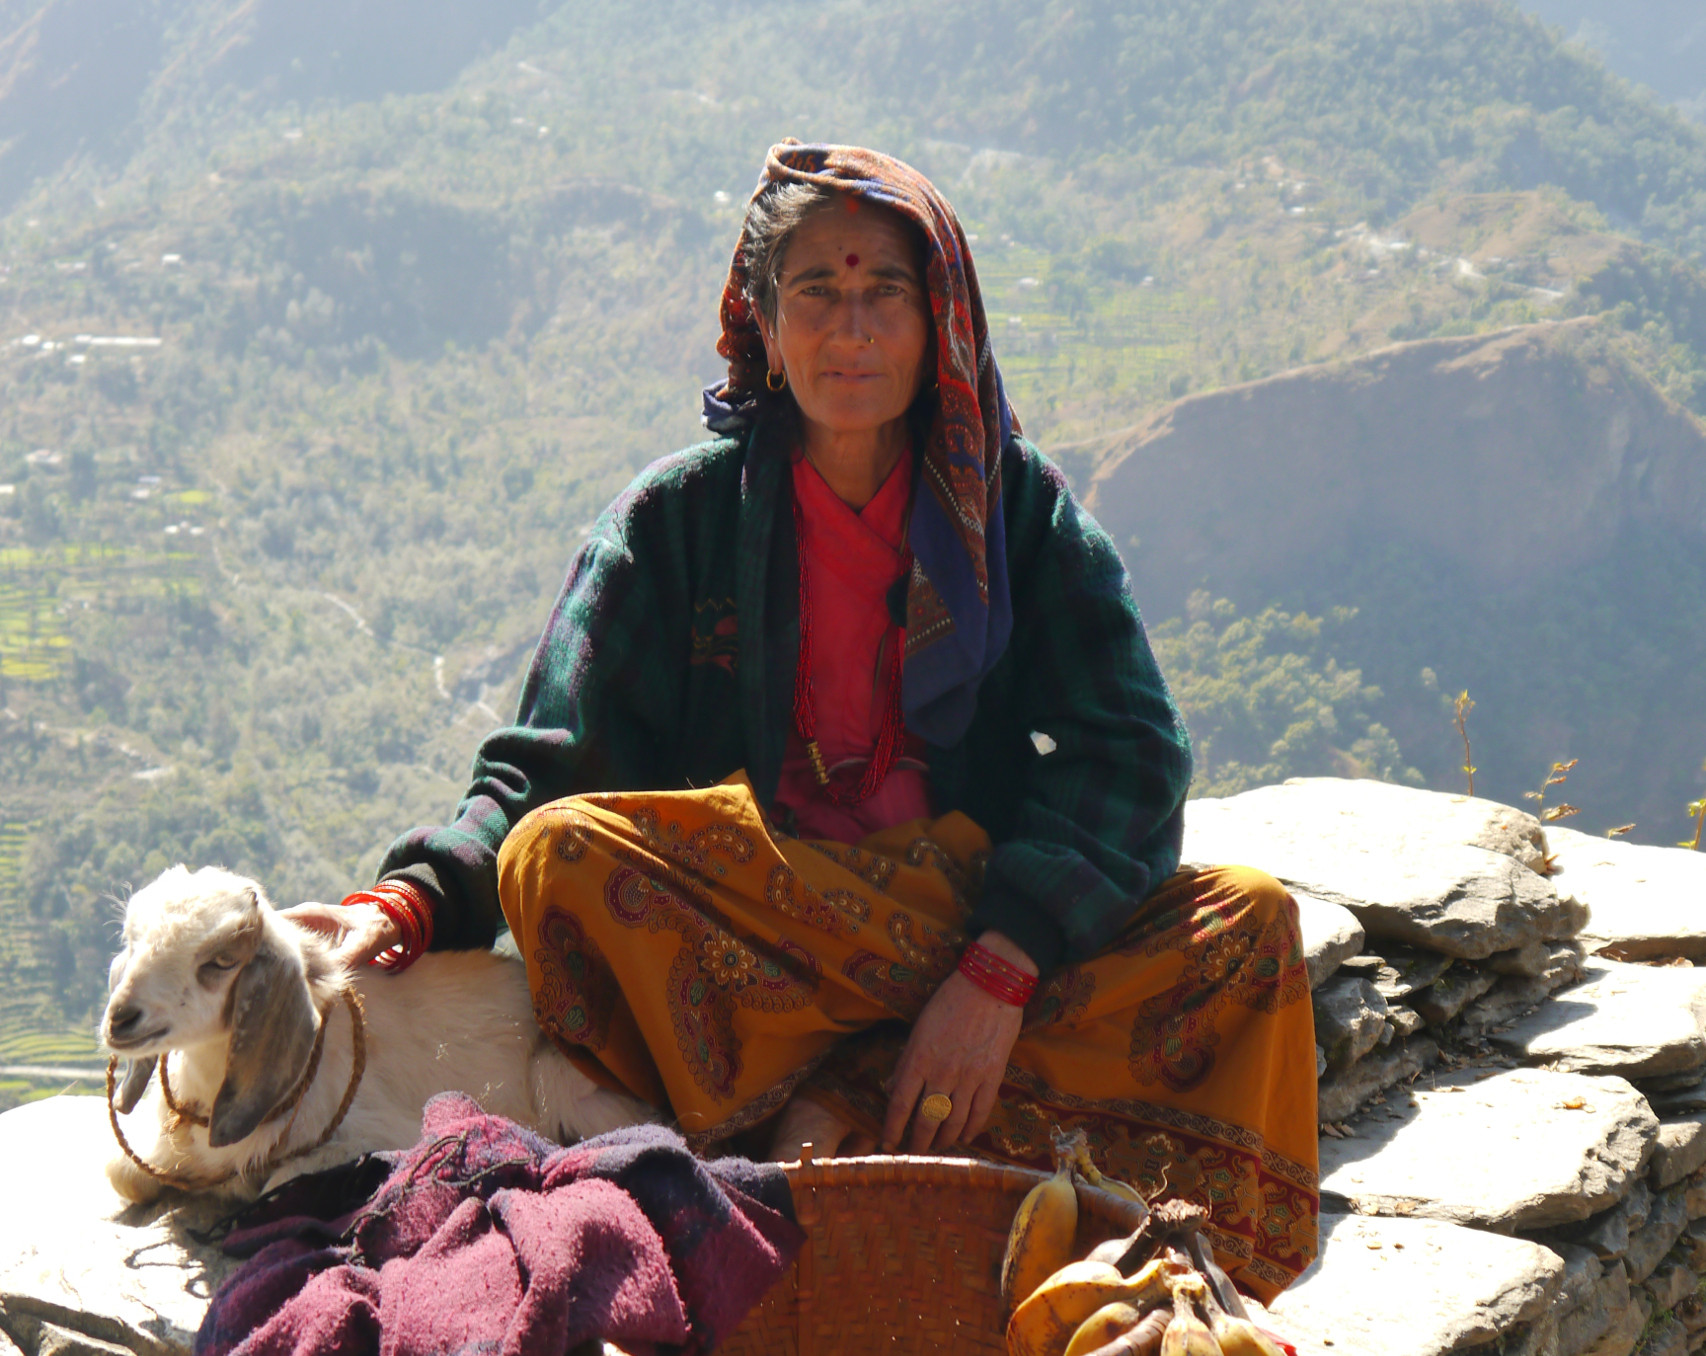 Nangi Village Annapurna Circuit Nepal Everest Mountain Trek Village Lady Woman Girl